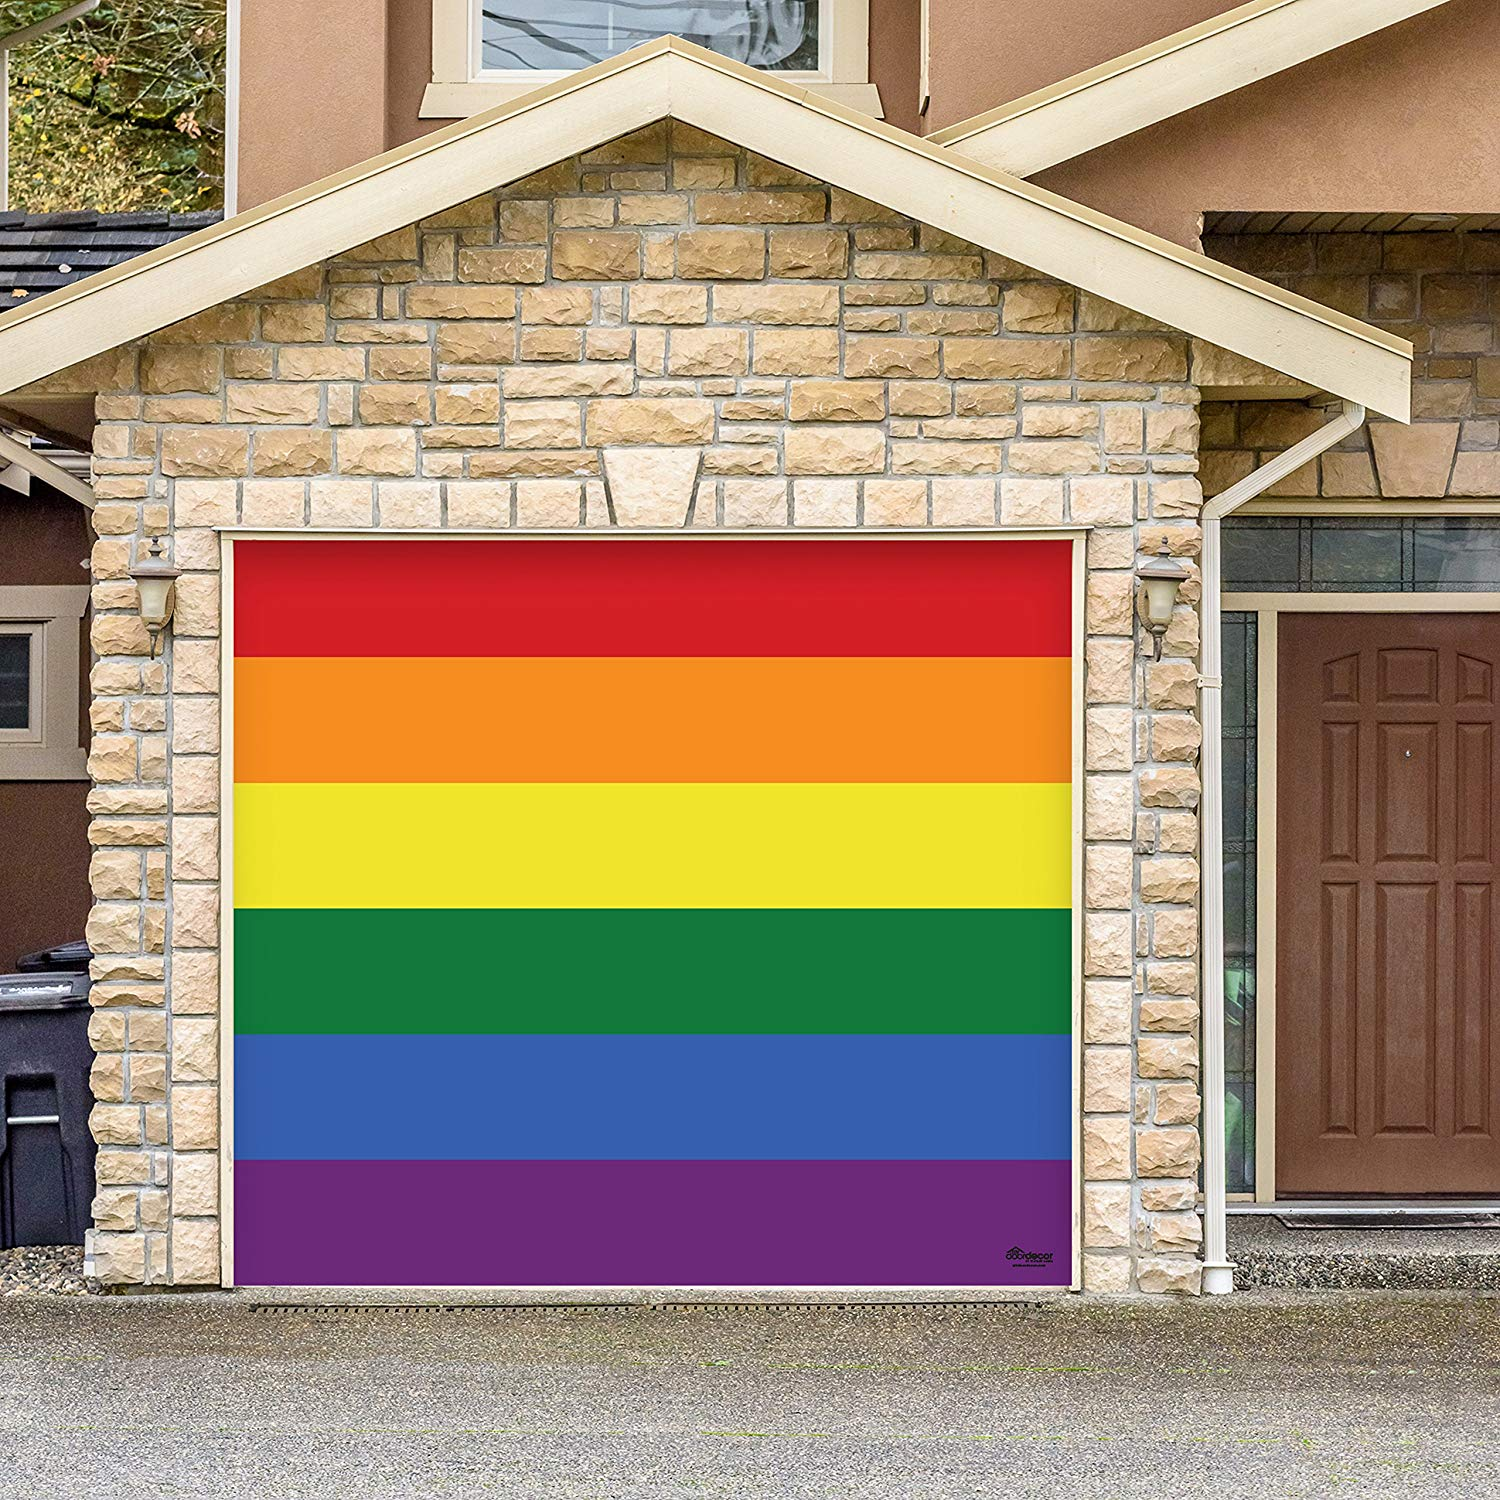 Victory Corps Original Pride - Outdoor PRIDE LGBT Garage Door Banner Mural Sign Décor 7'x 8' Car Garage -The Original Holiday Garage Door Banner Decor